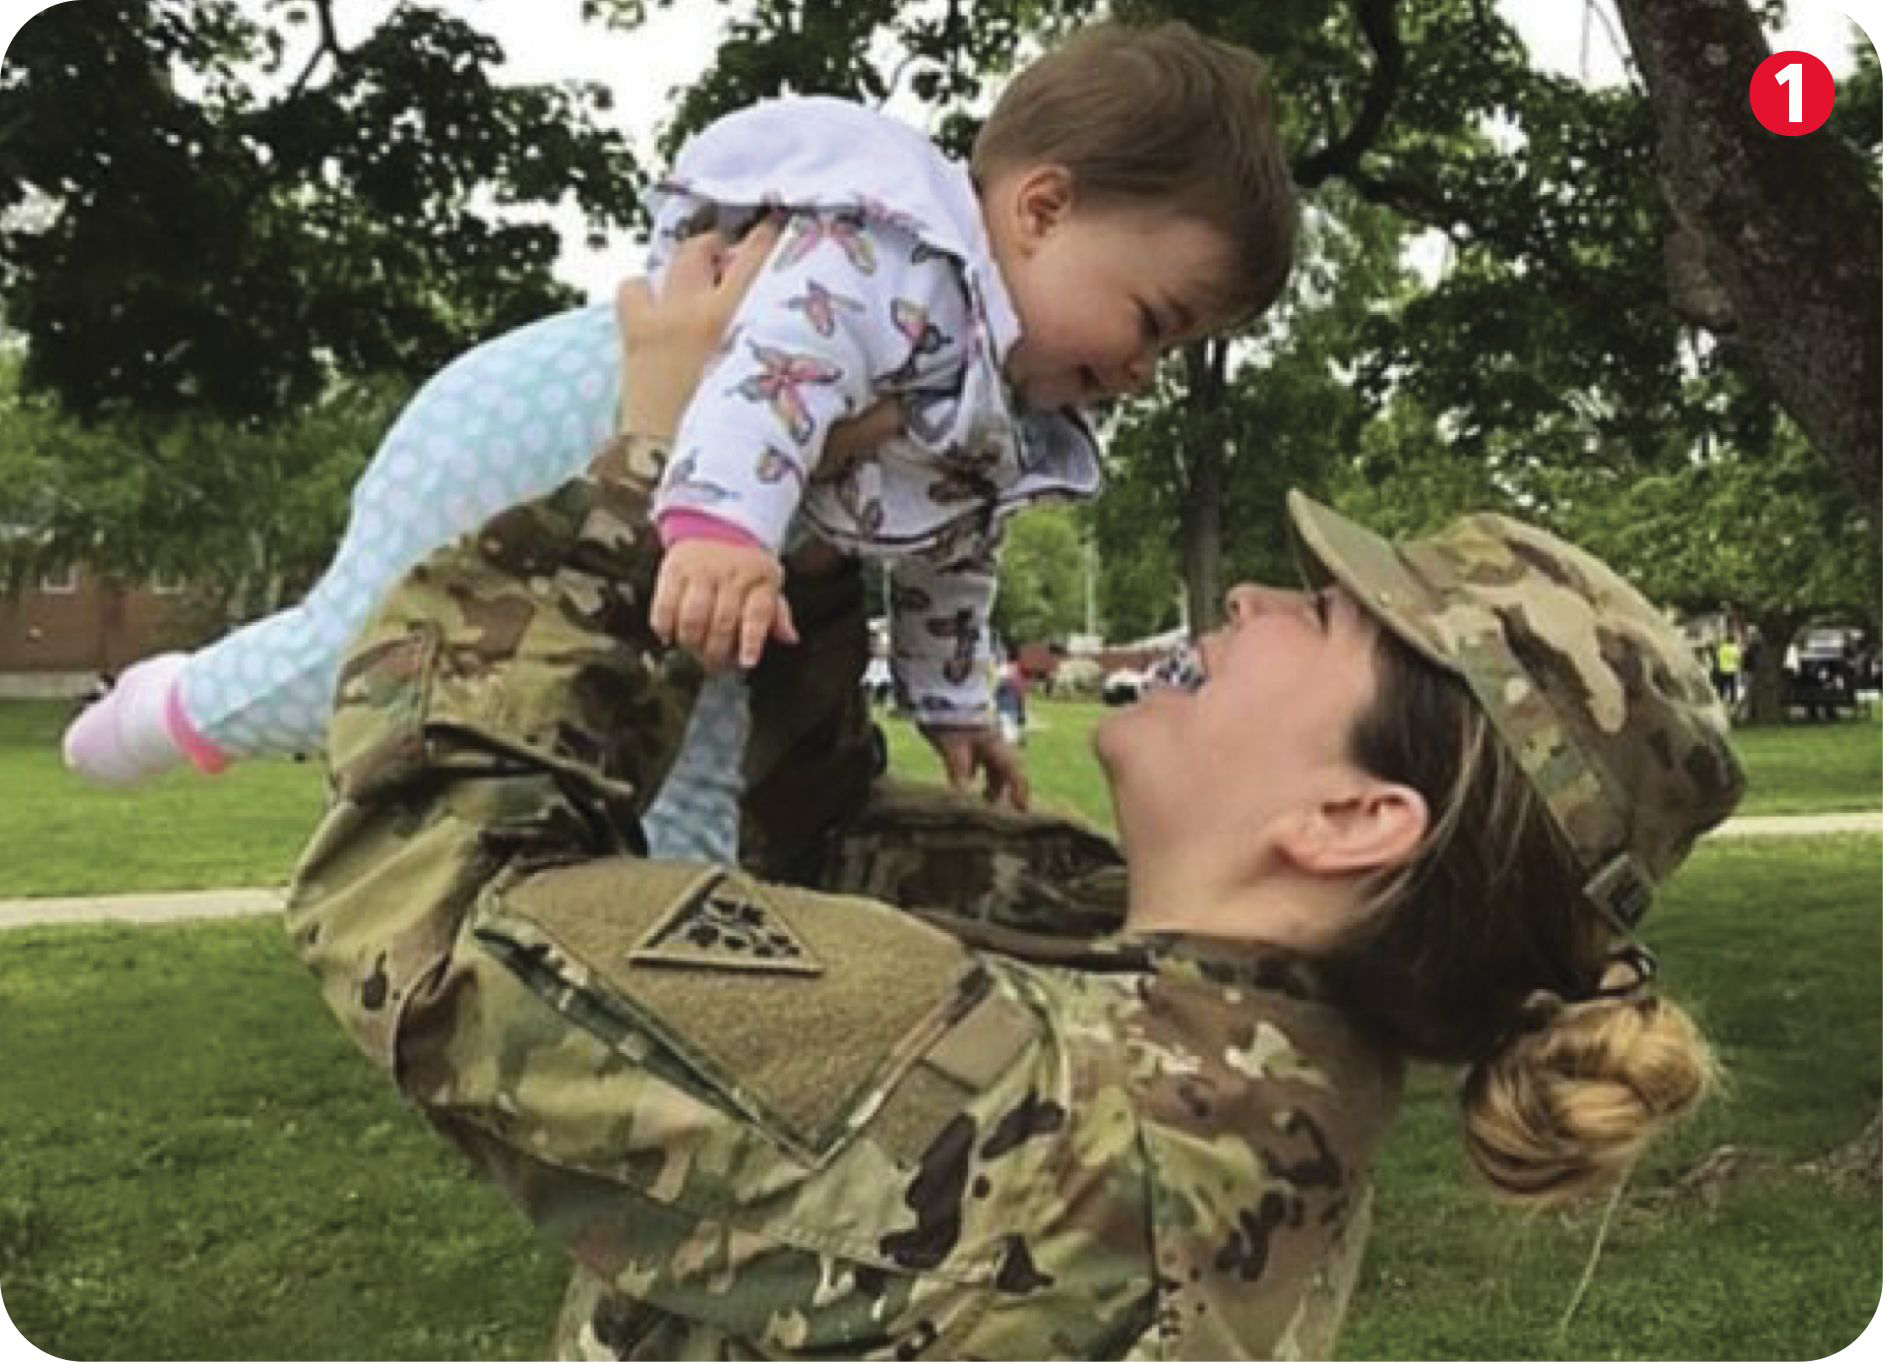 SCSU student and Army National Guard member Renee Villarreal with baby